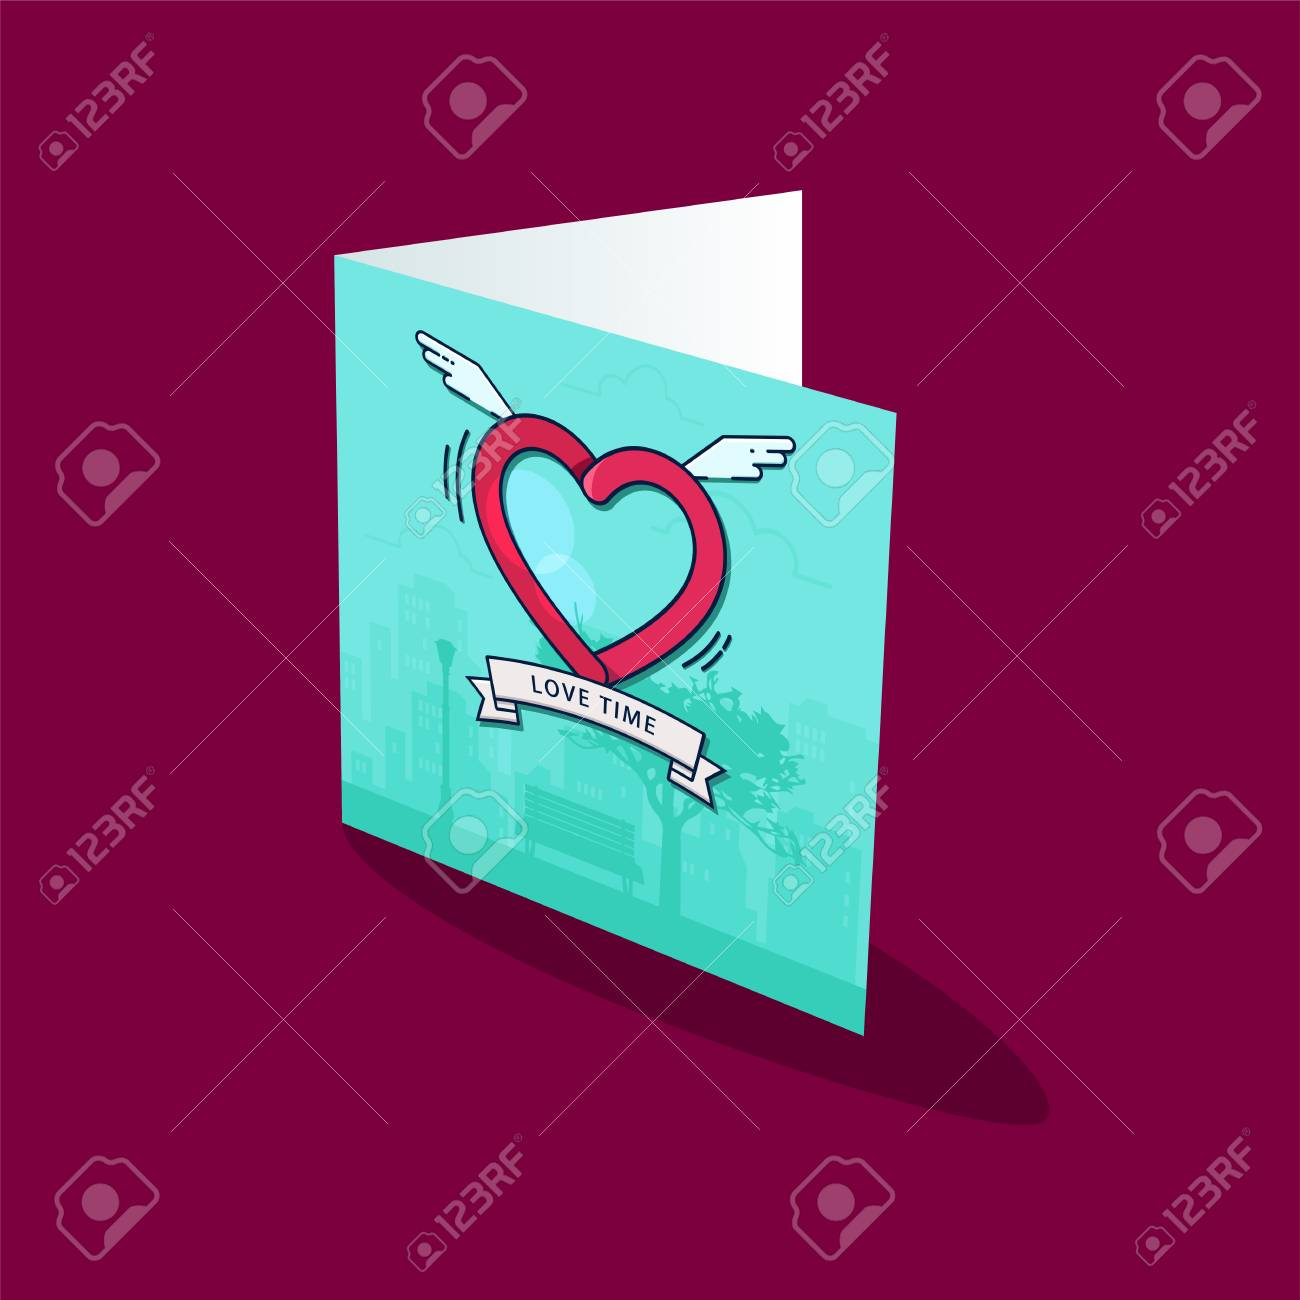 greeting card template heart with wings in the sky with clouds